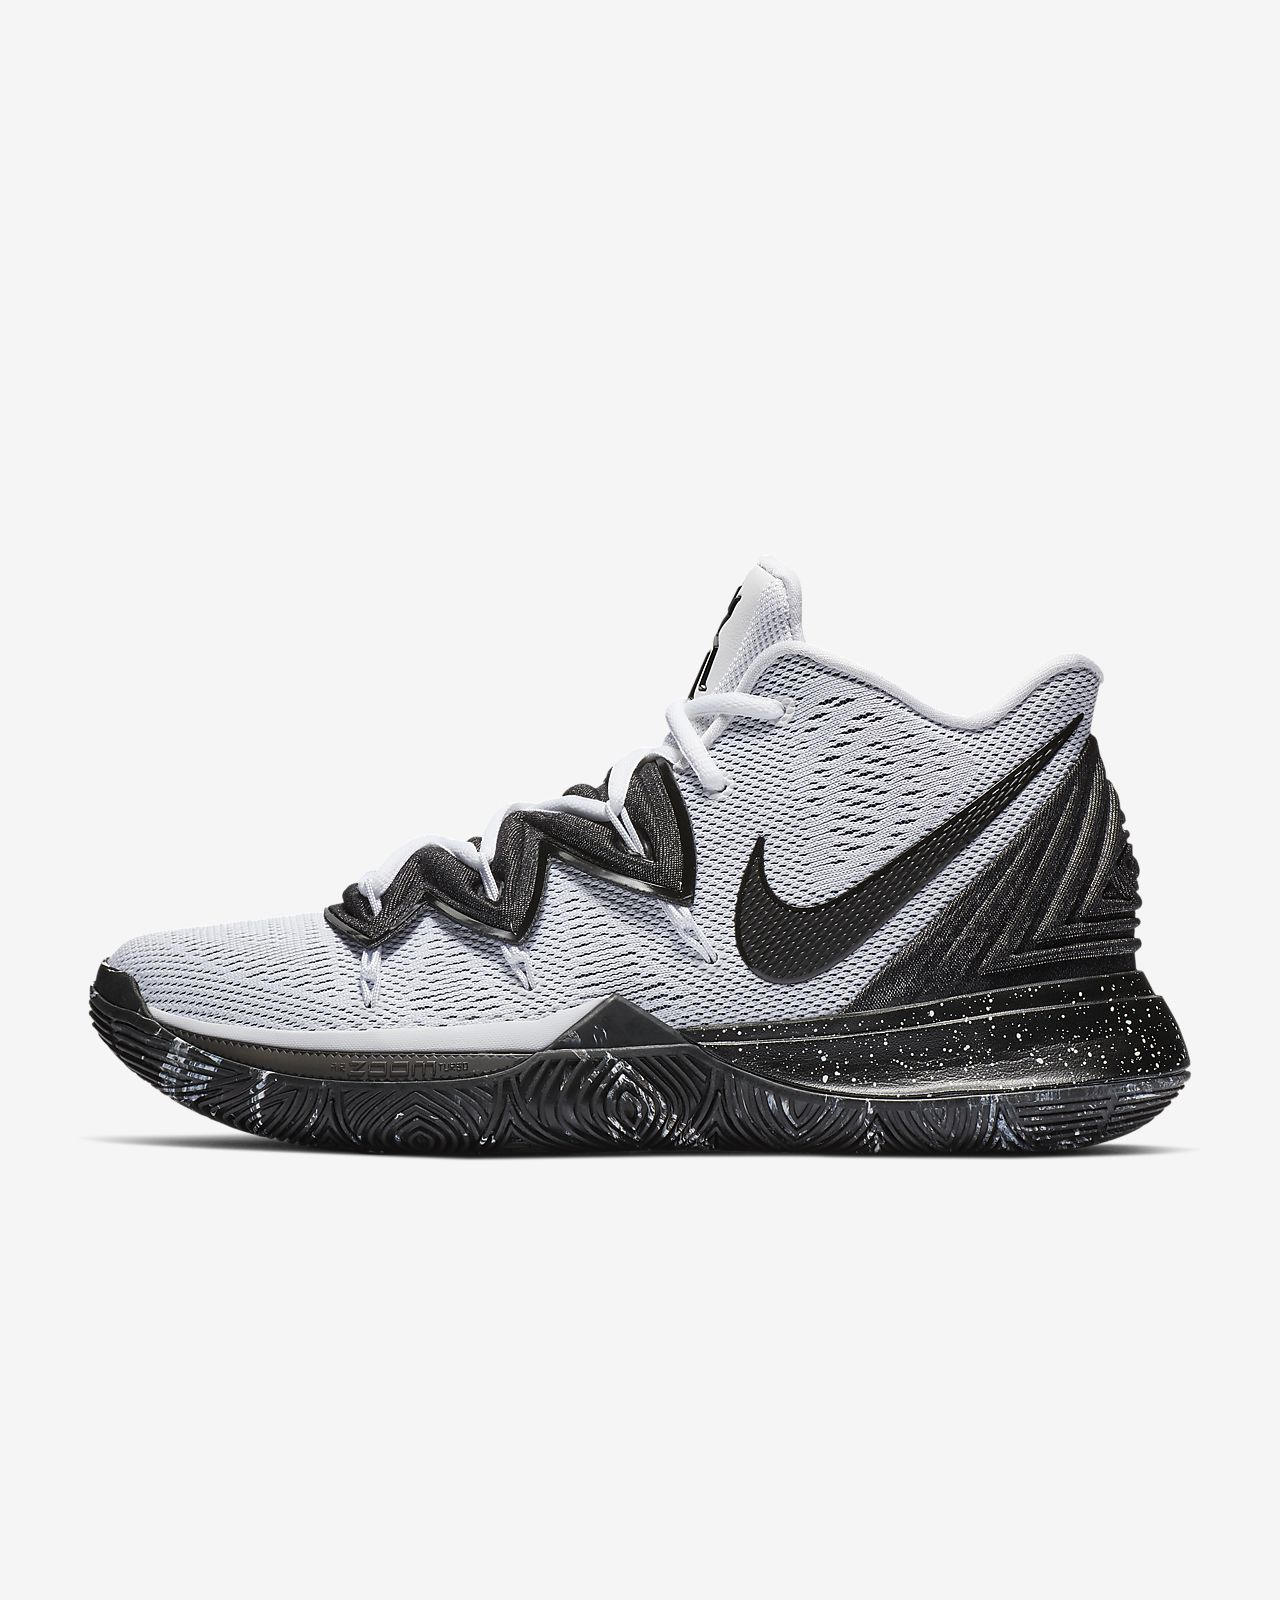 best sneakers f5f06 9a44a Low Resolution Kyrie 5 Schuh Kyrie 5 Schuh